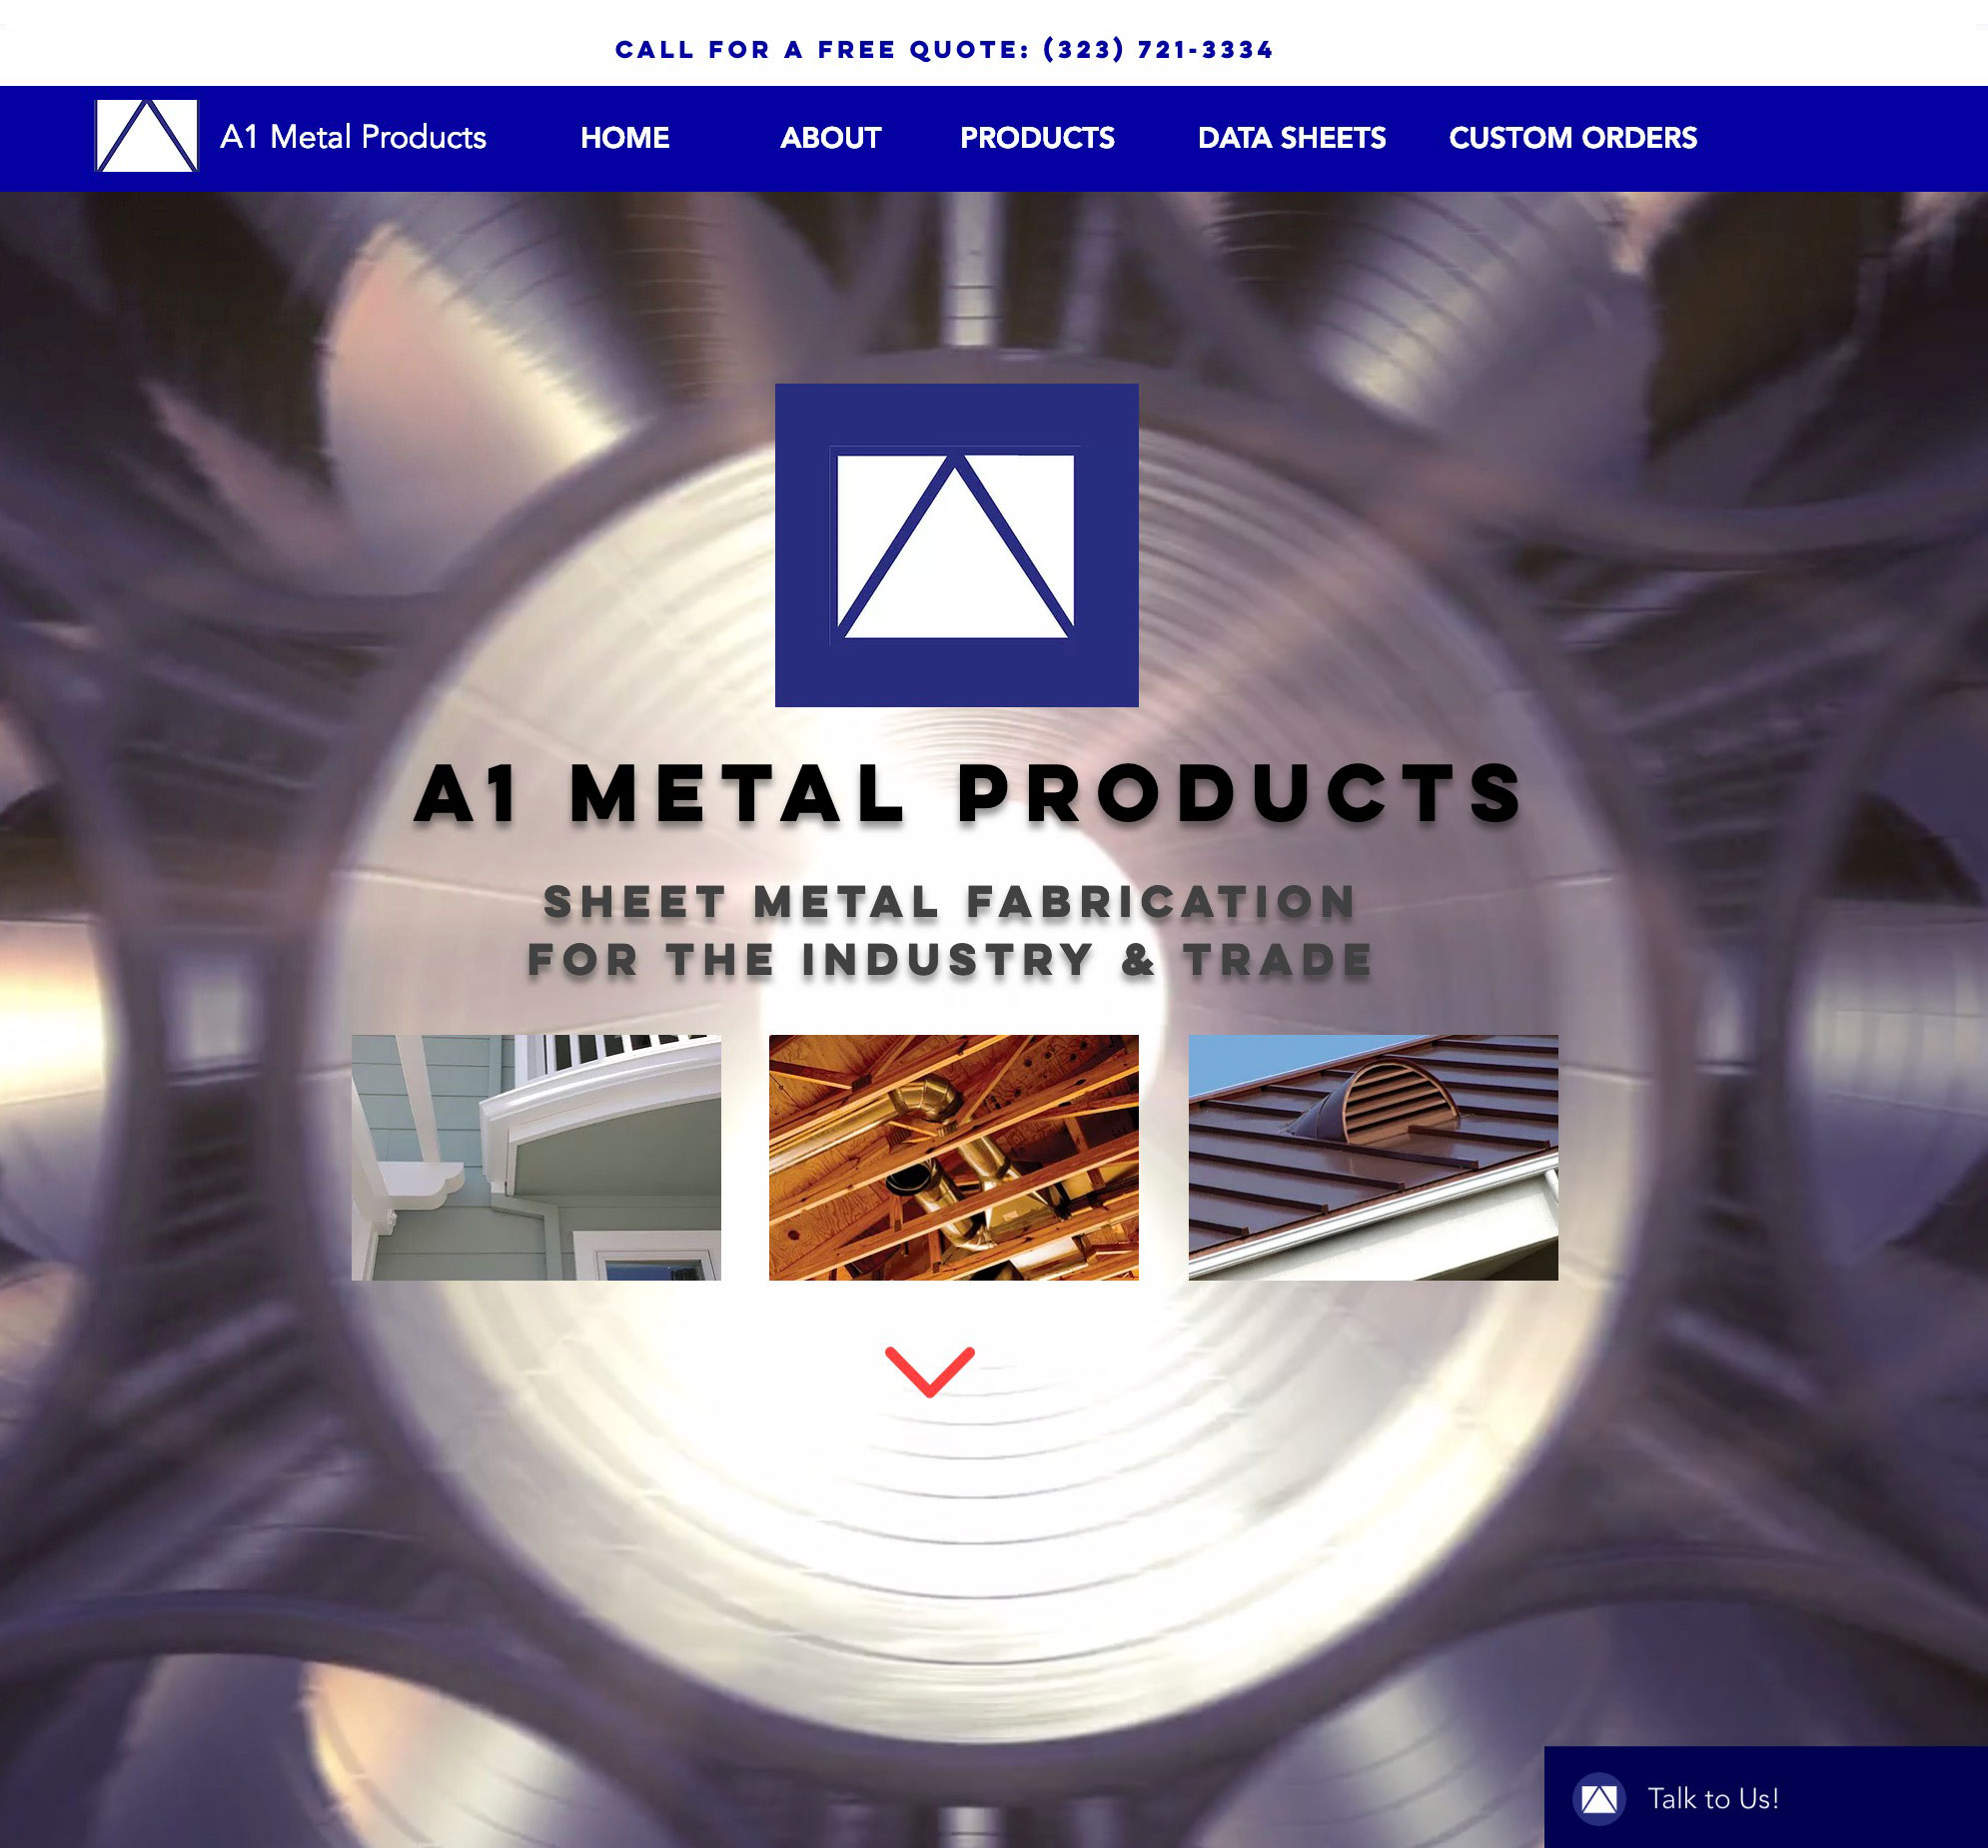 A1 Metal Products website